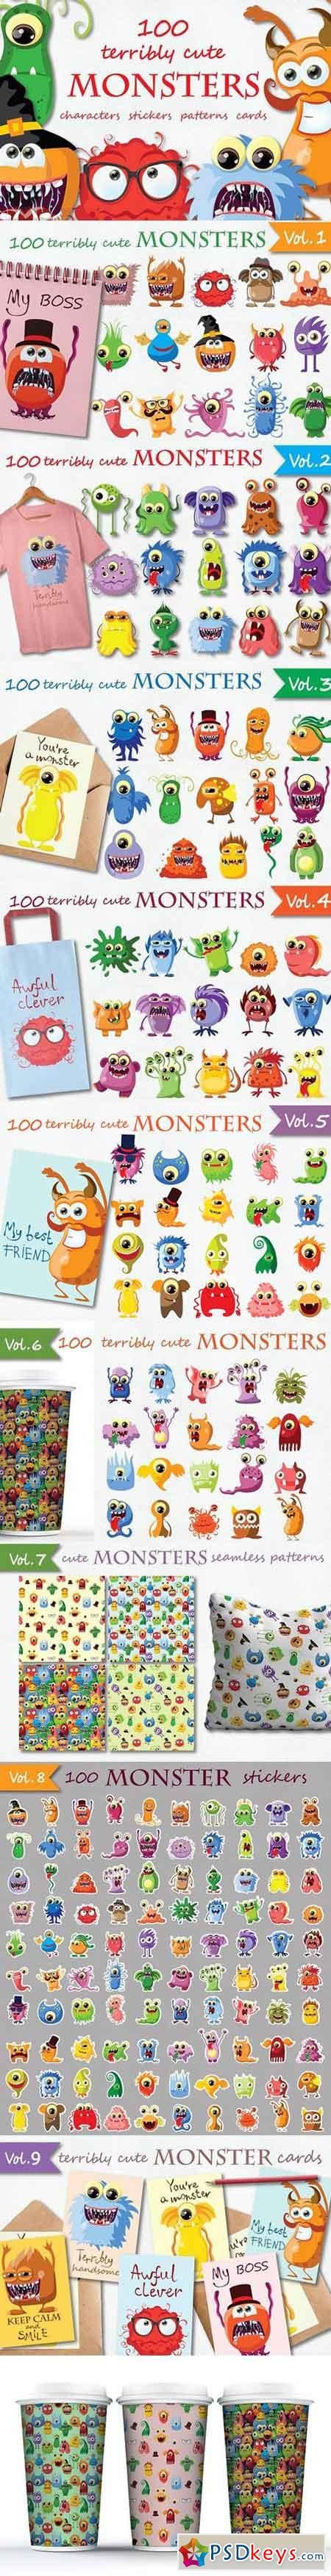 100 terribly cute MONSTERS 1215285